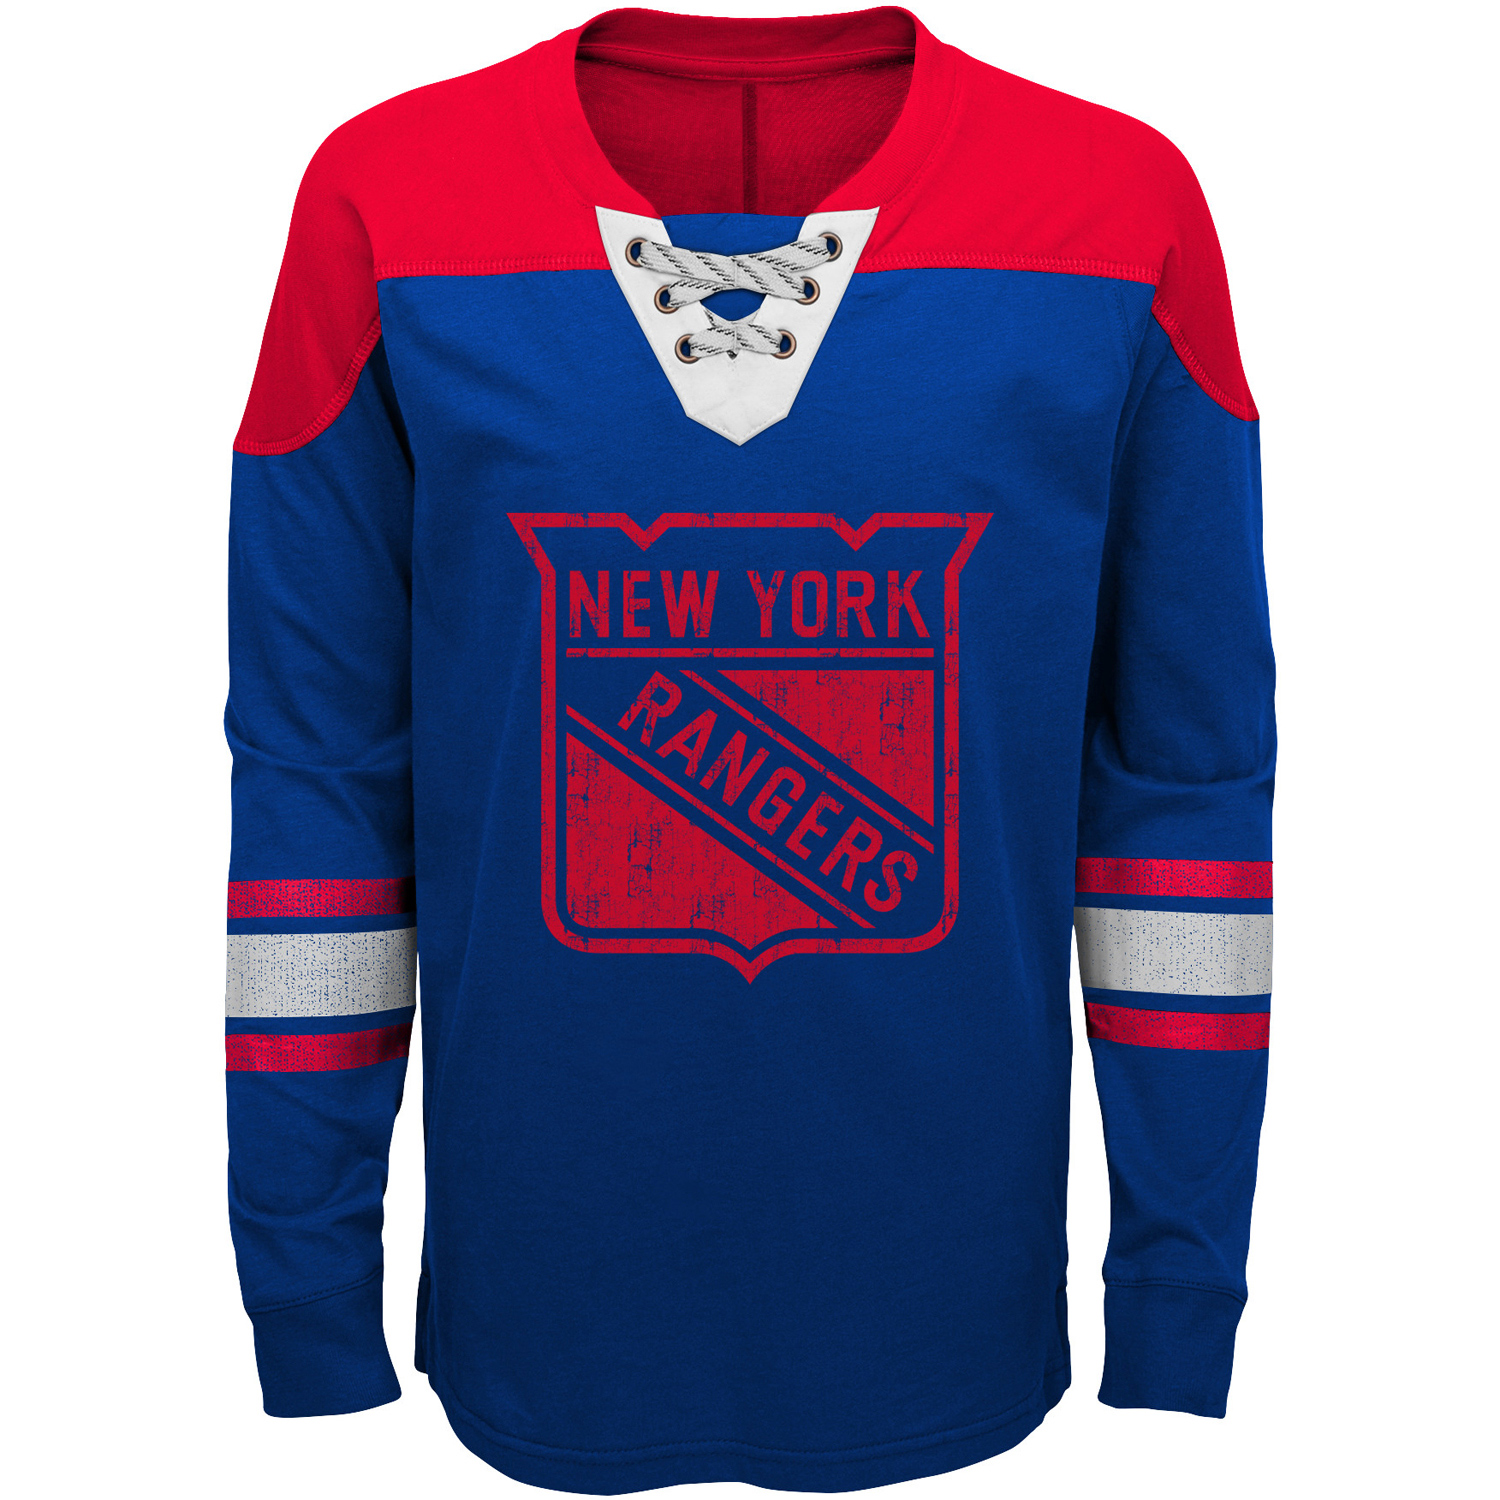 New York Rangers Youth Perennial Hockey Lace-Up Crew Sweatshirt Blue Red by Outerstuff